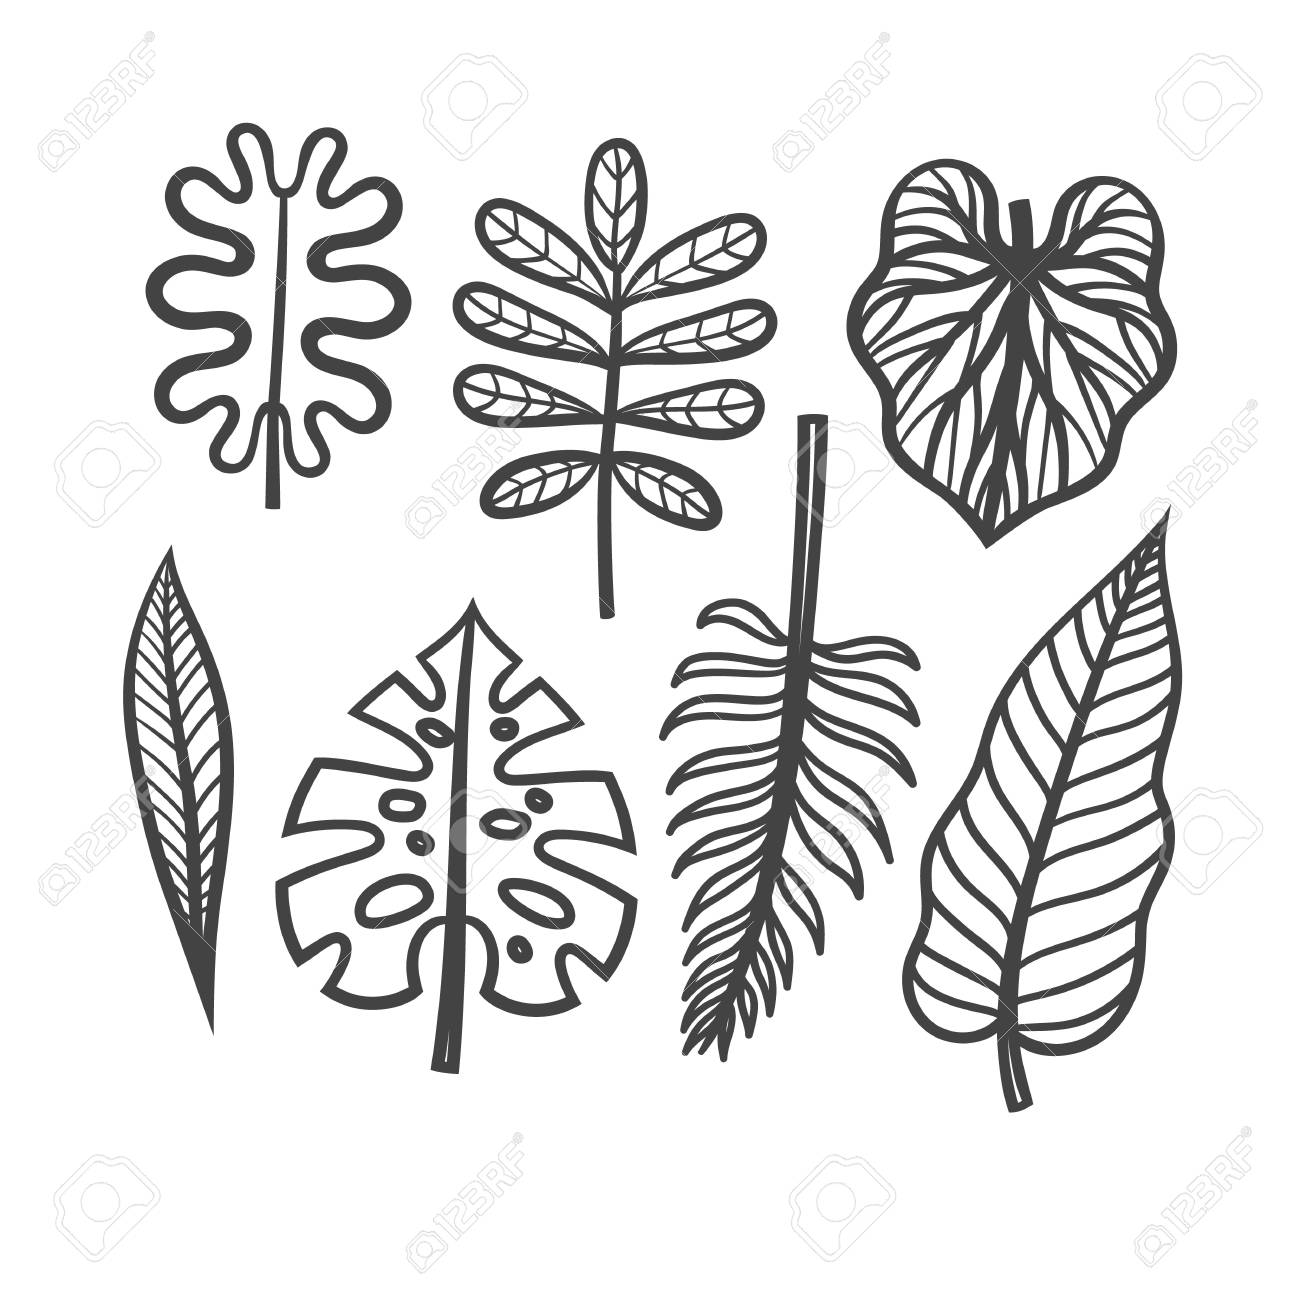 Vector Set Of Leaves Of Tropical Plants Hand Drawing Of Of Tropical Royalty Free Cliparts Vectors And Stock Illustration Image 74623832 What's included 6 large files 300dpi in the following sizes. vector set of leaves of tropical plants hand drawing of of tropical